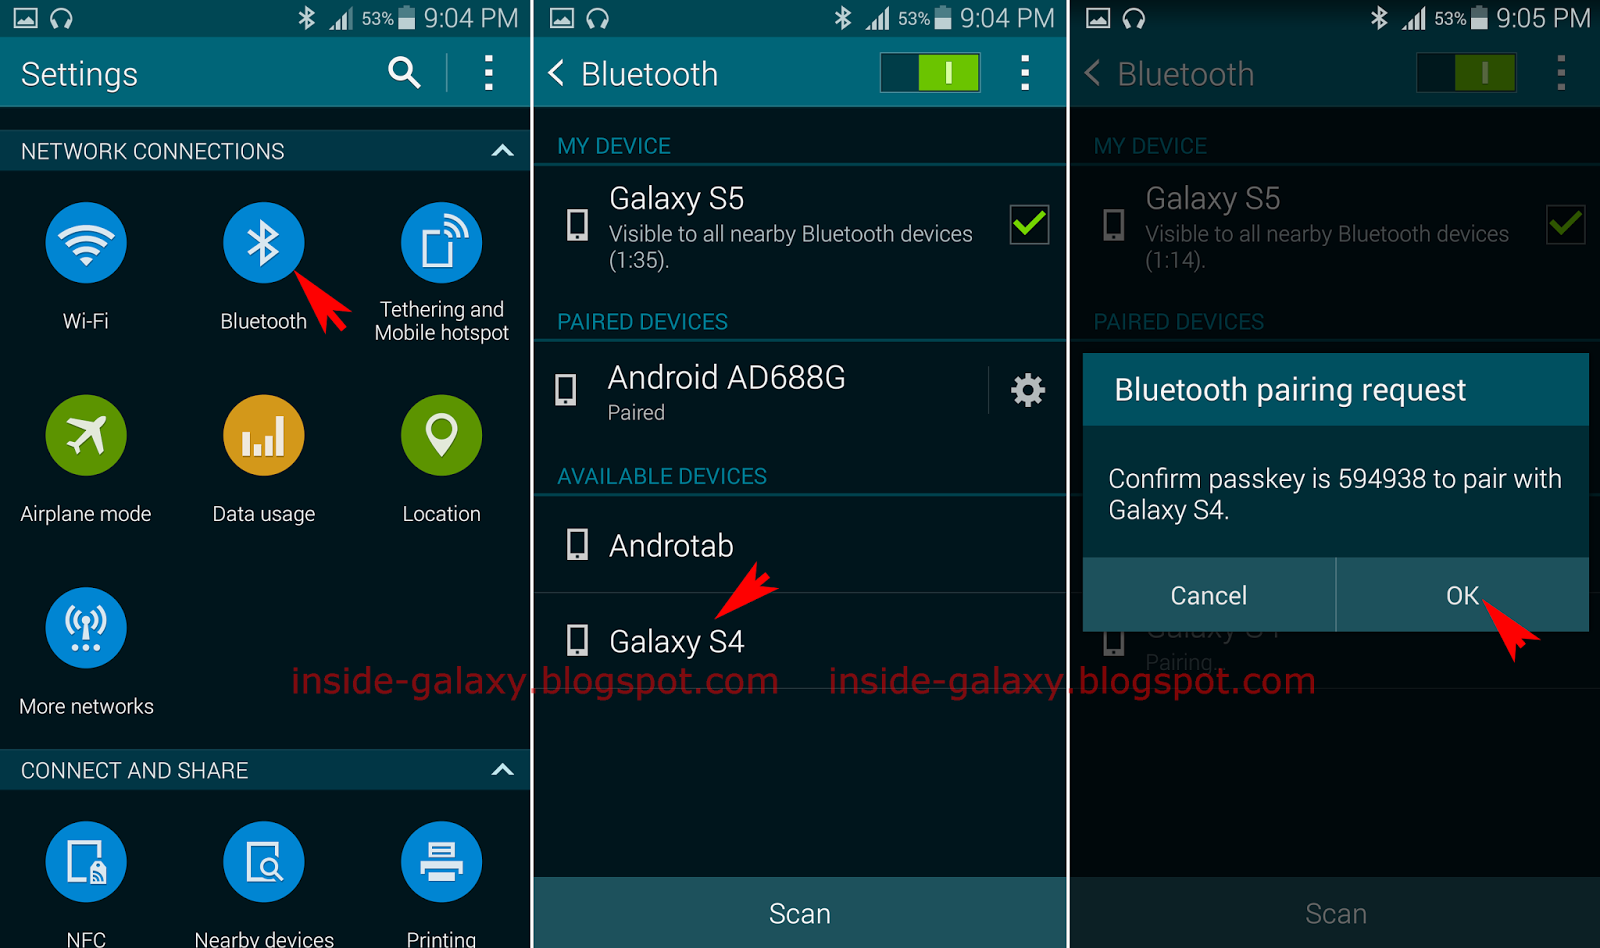 Samsung Galaxy S5: How to Transfer Files Using Bluetooth in